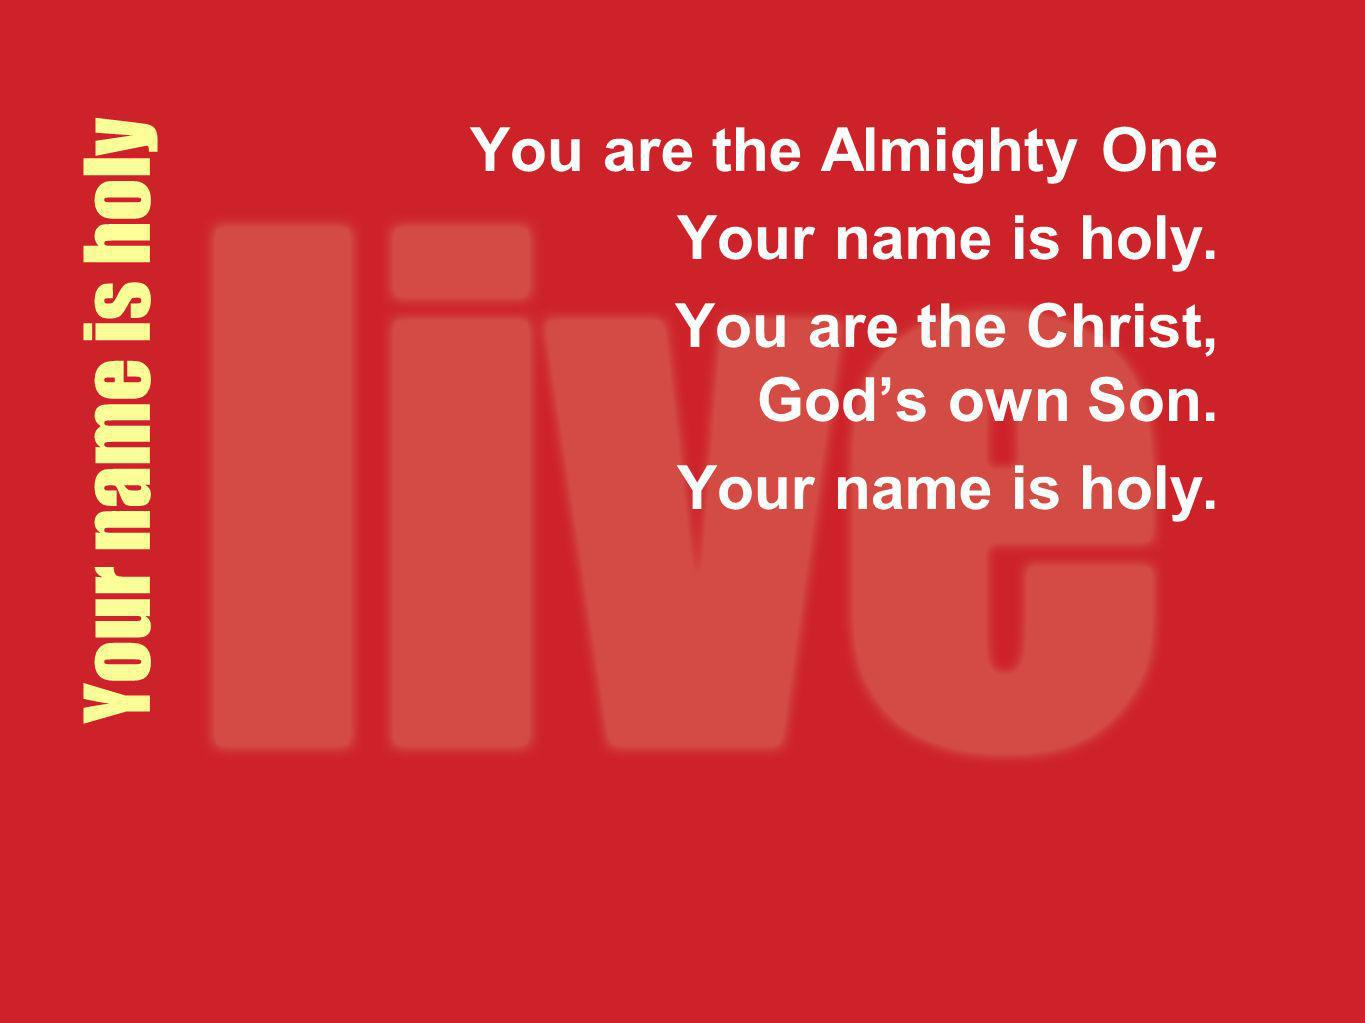 Your name is holy You are the Almighty One Your name is holy.